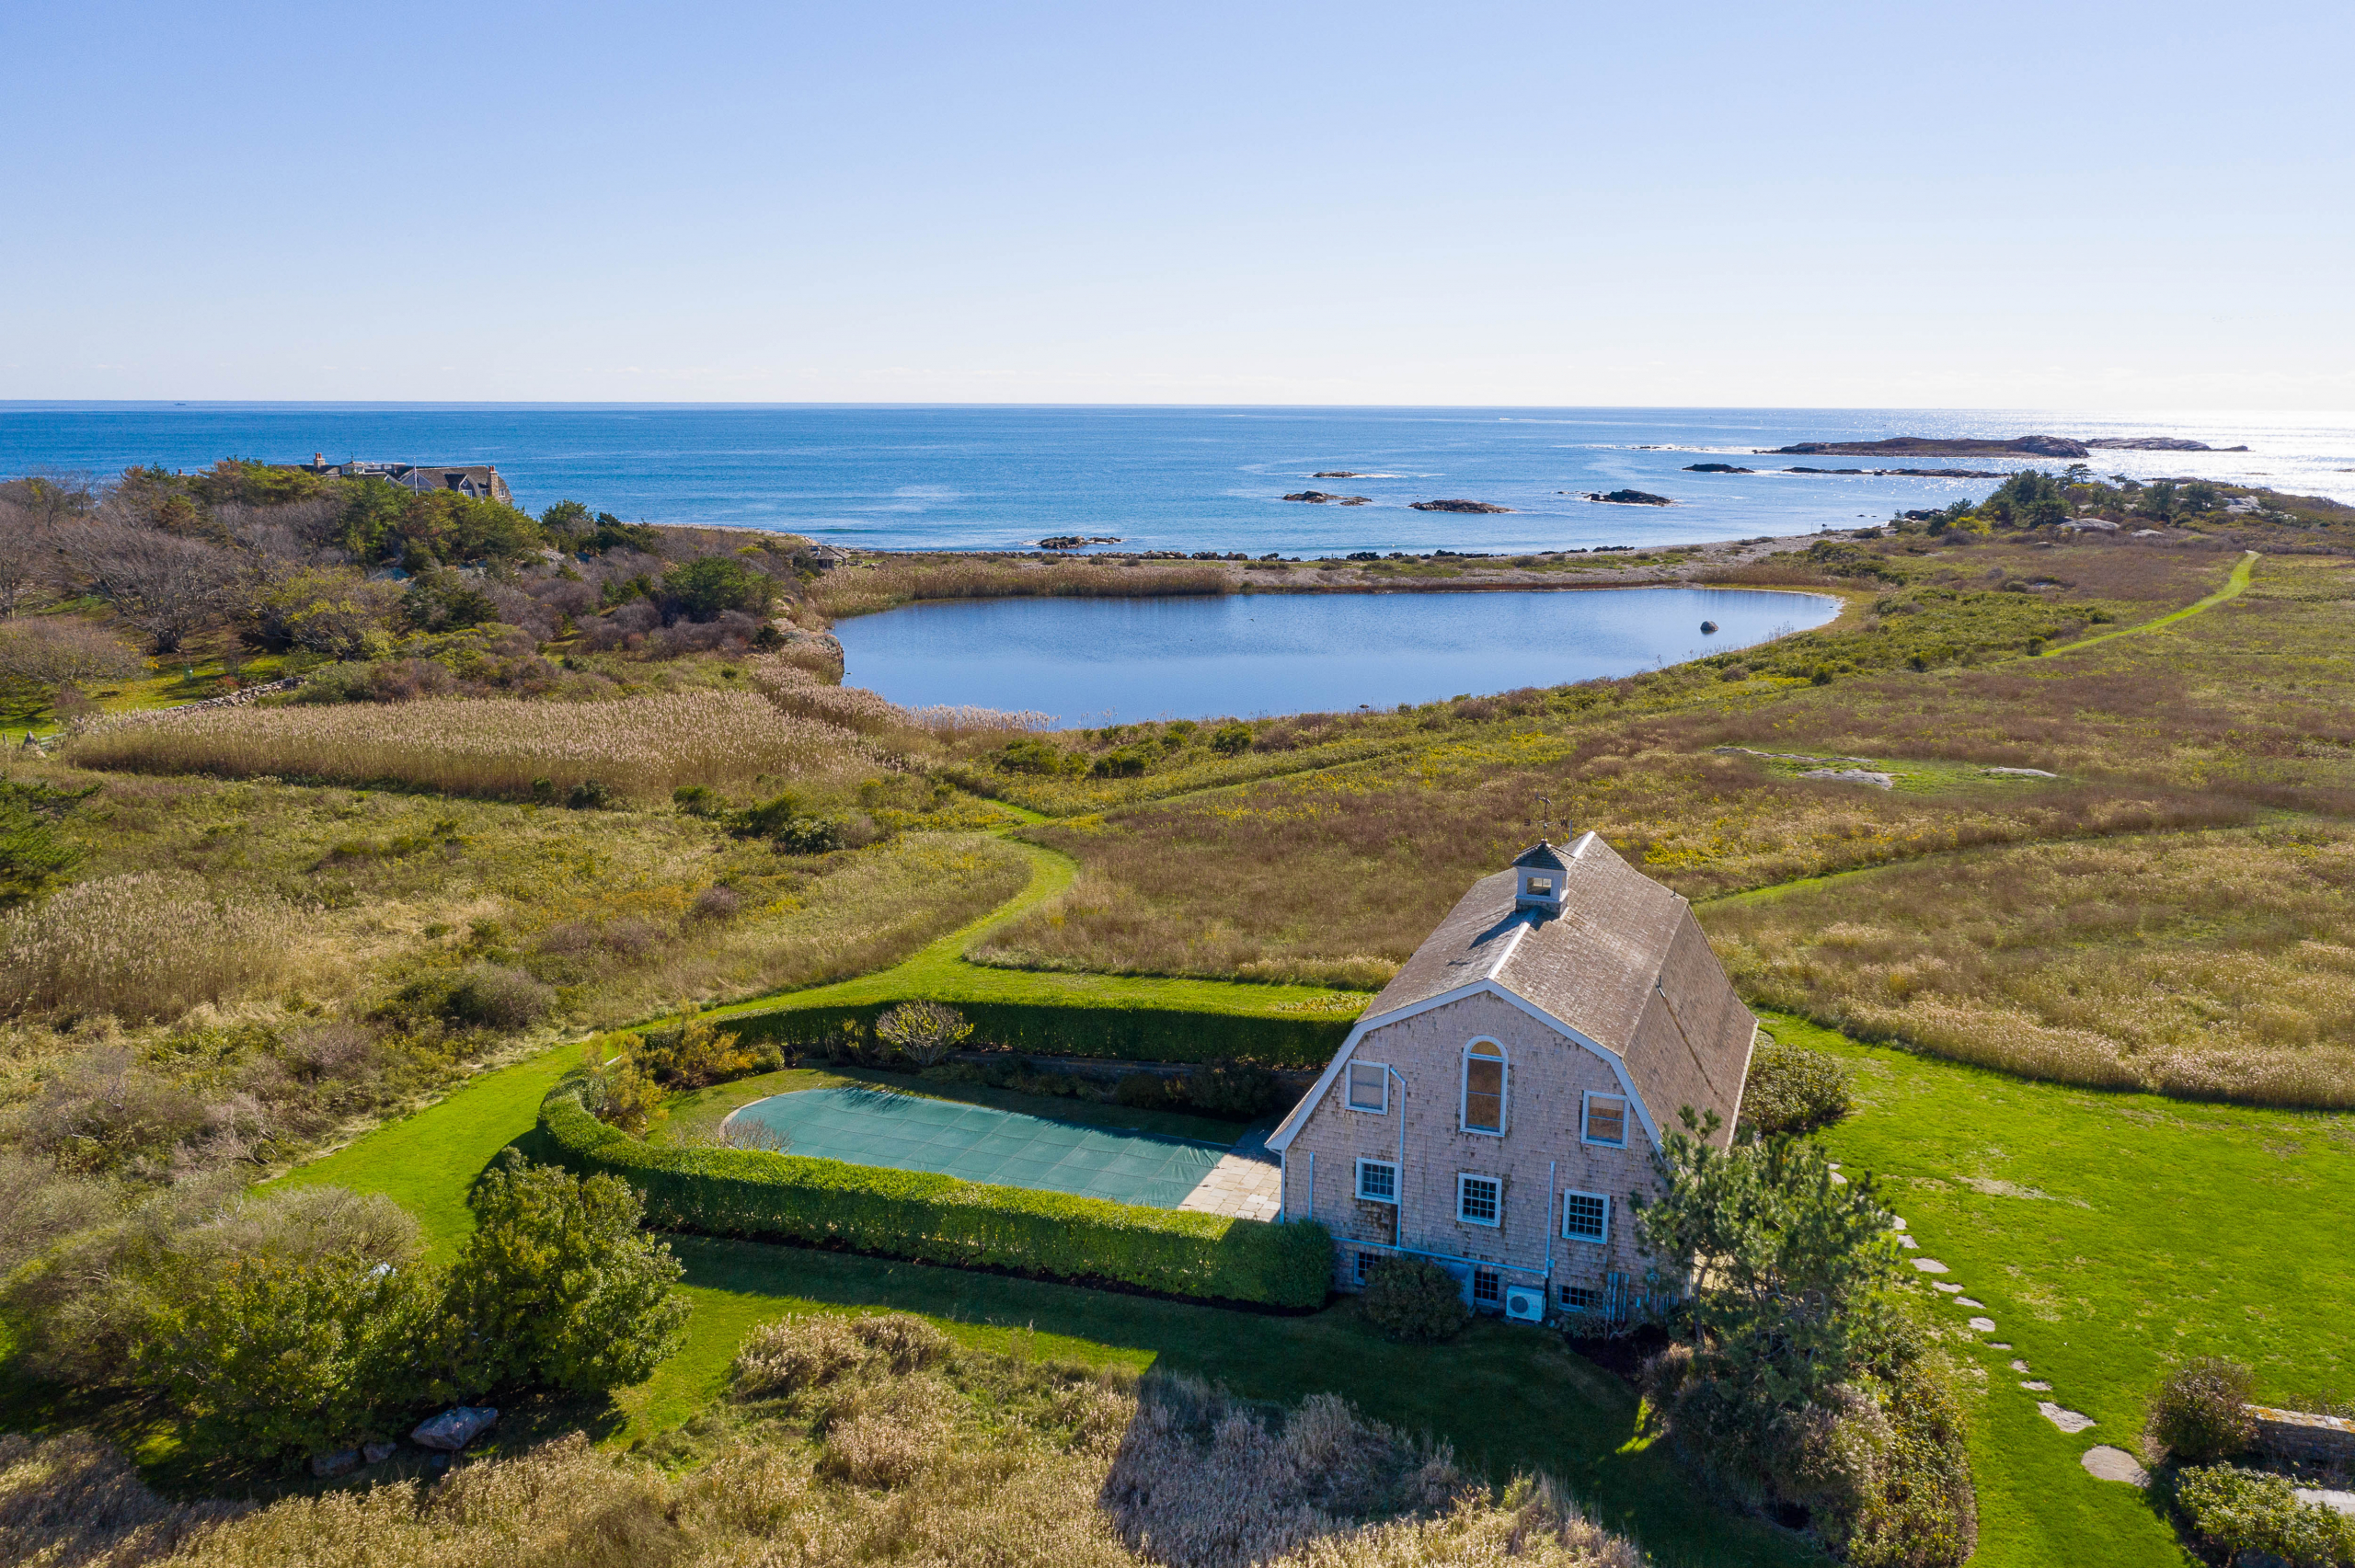 SAKONNET POINT OCEANFRONT SELLS FOR A HISTORIC $4.5M, MARKING THE TOP TEN SALES EVER IN LITTLE COMPTON*